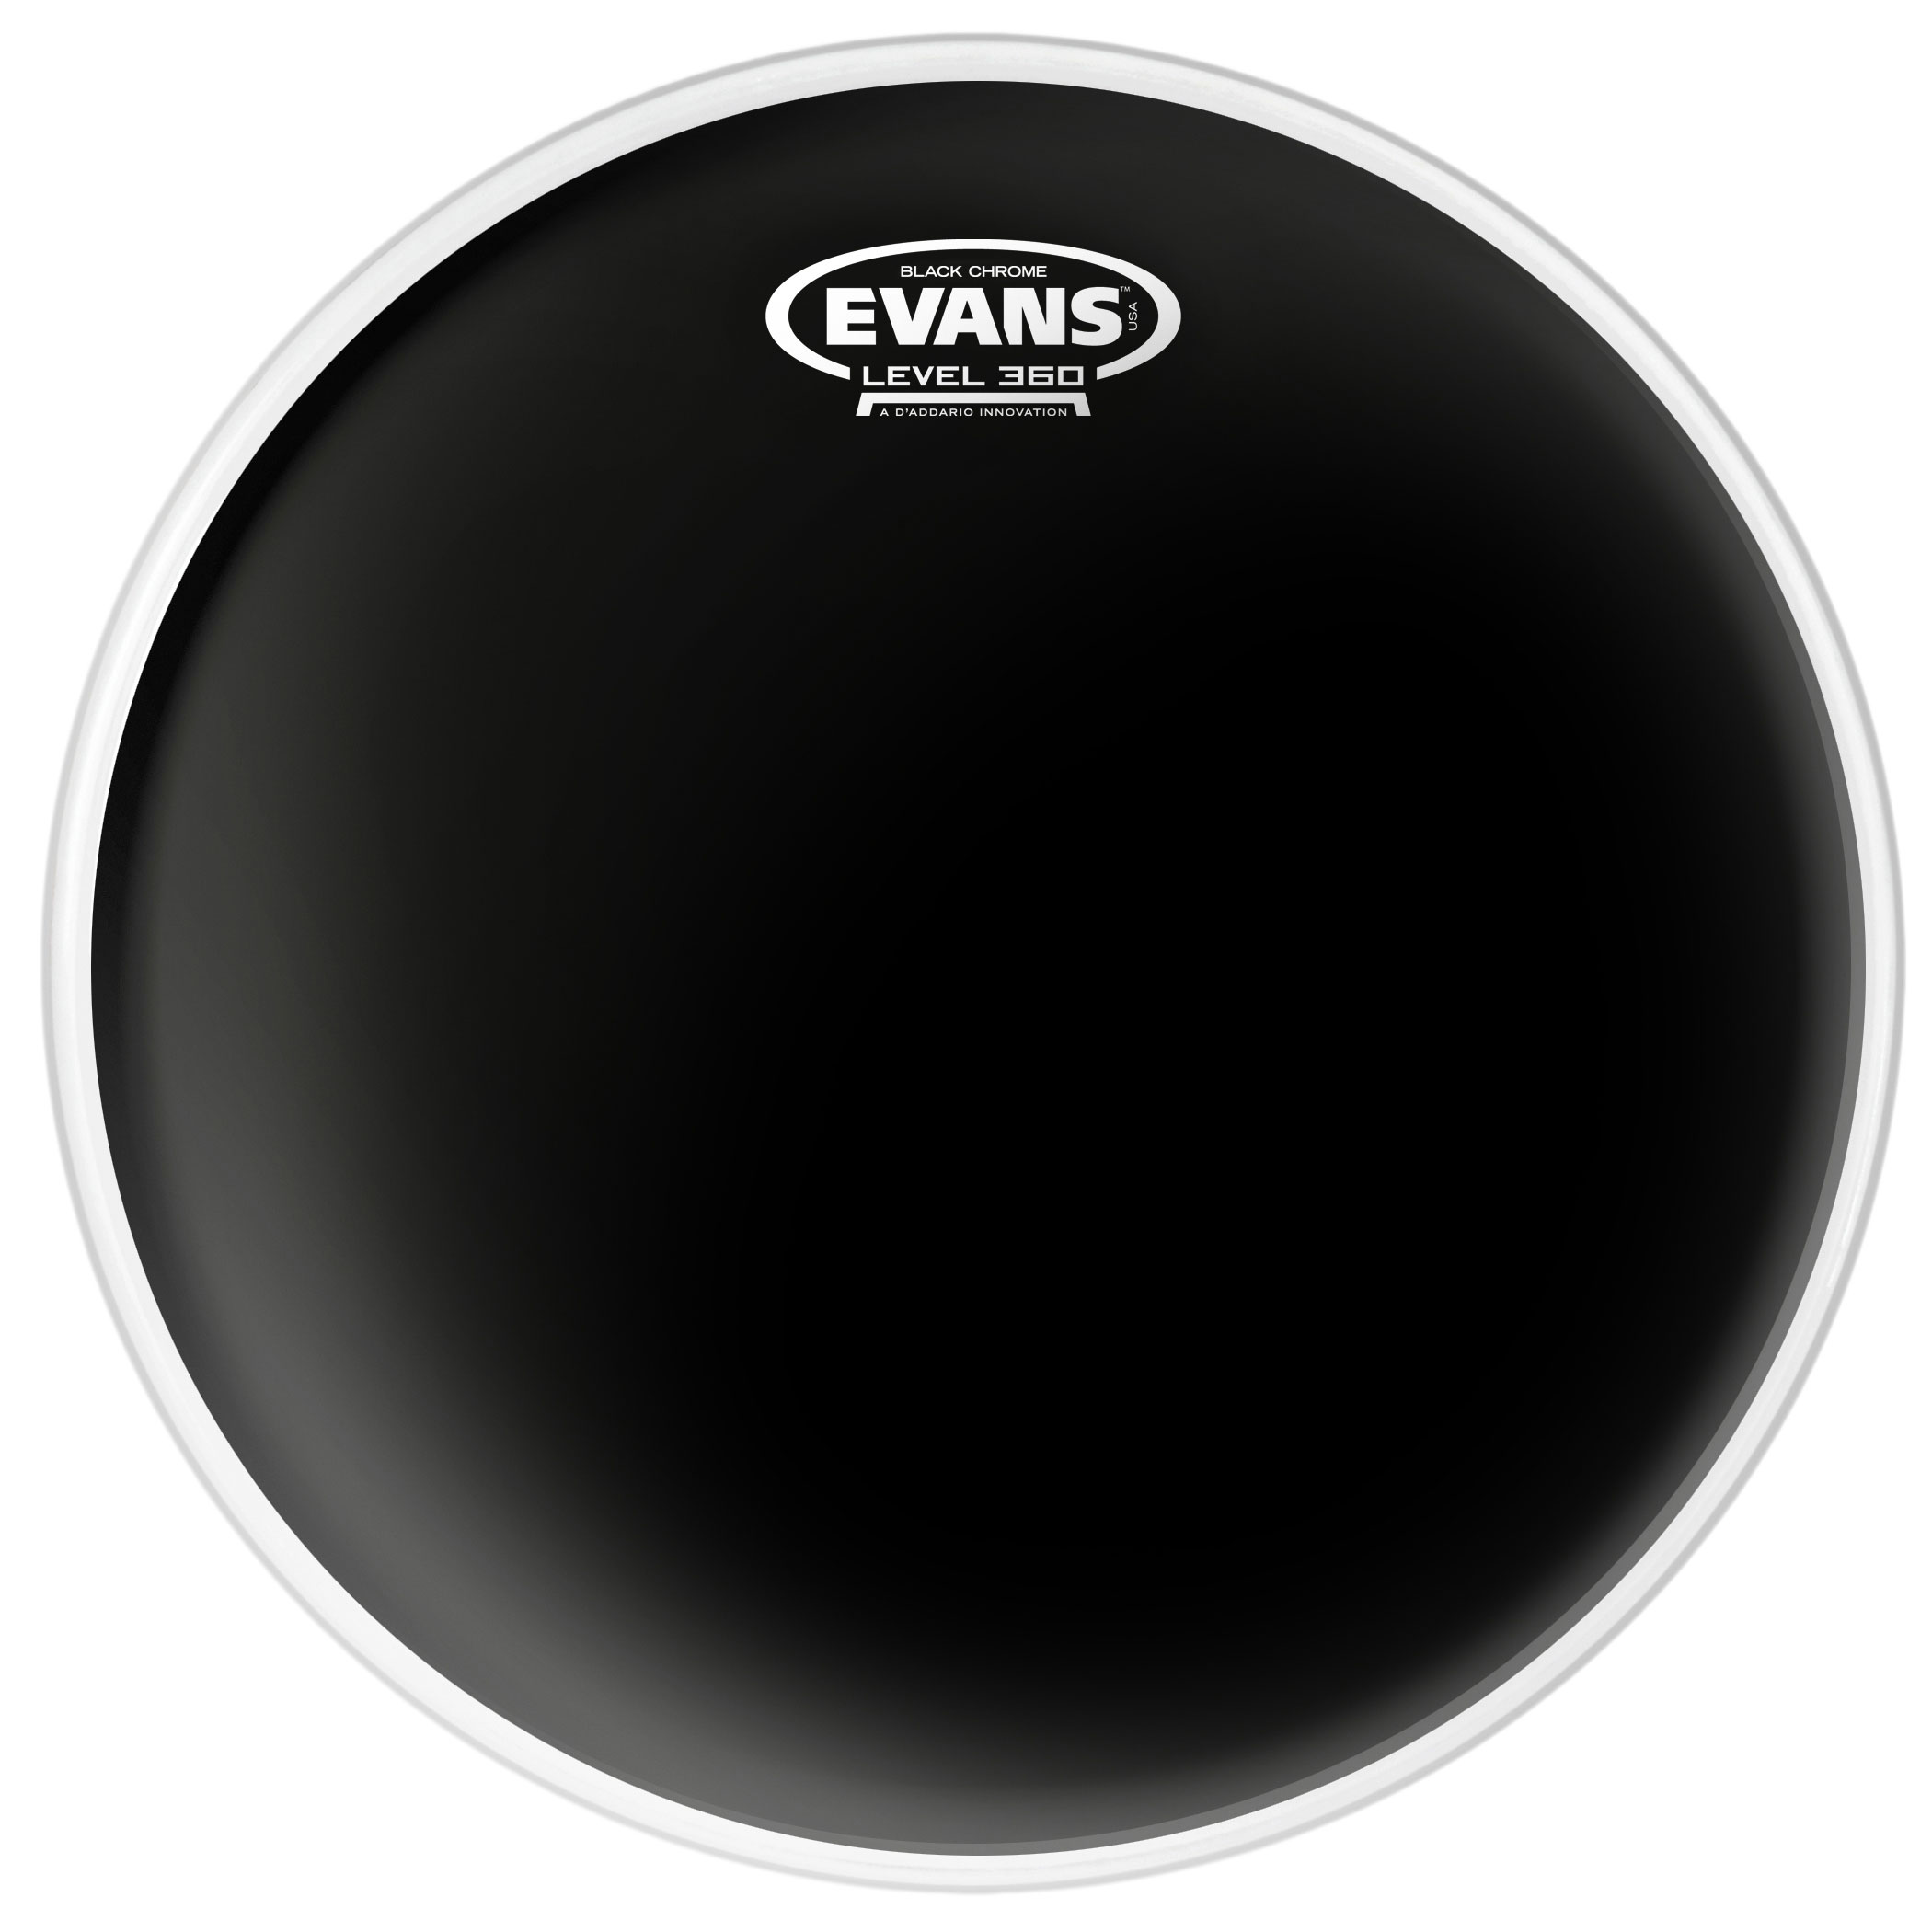 "Evans 8"" Black Chrome Head"